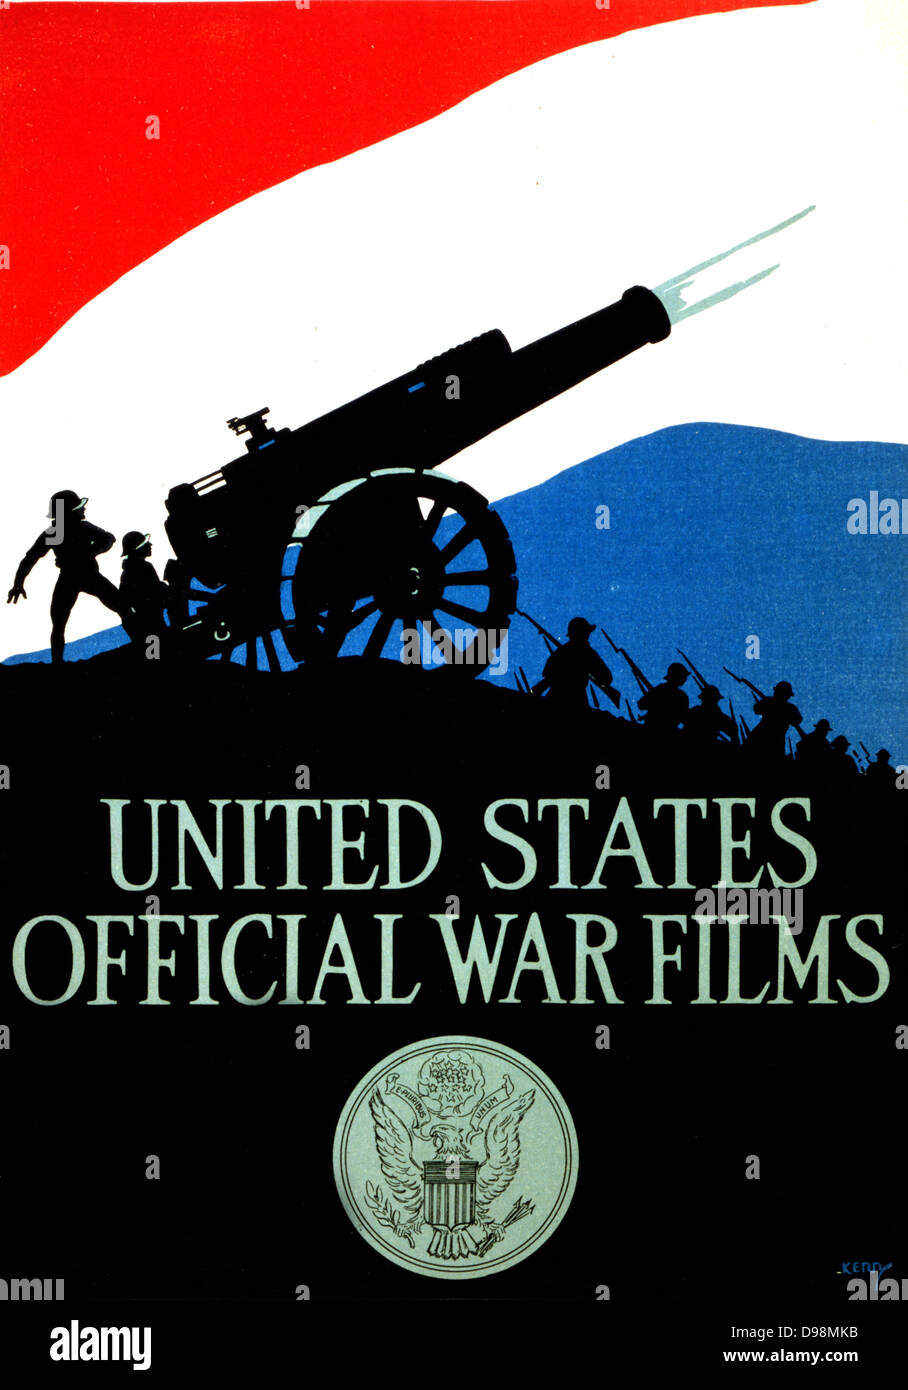 United States official war films [1917] Poster showing silhouette of soldiers and firing cannon against a red, white, - Stock Image